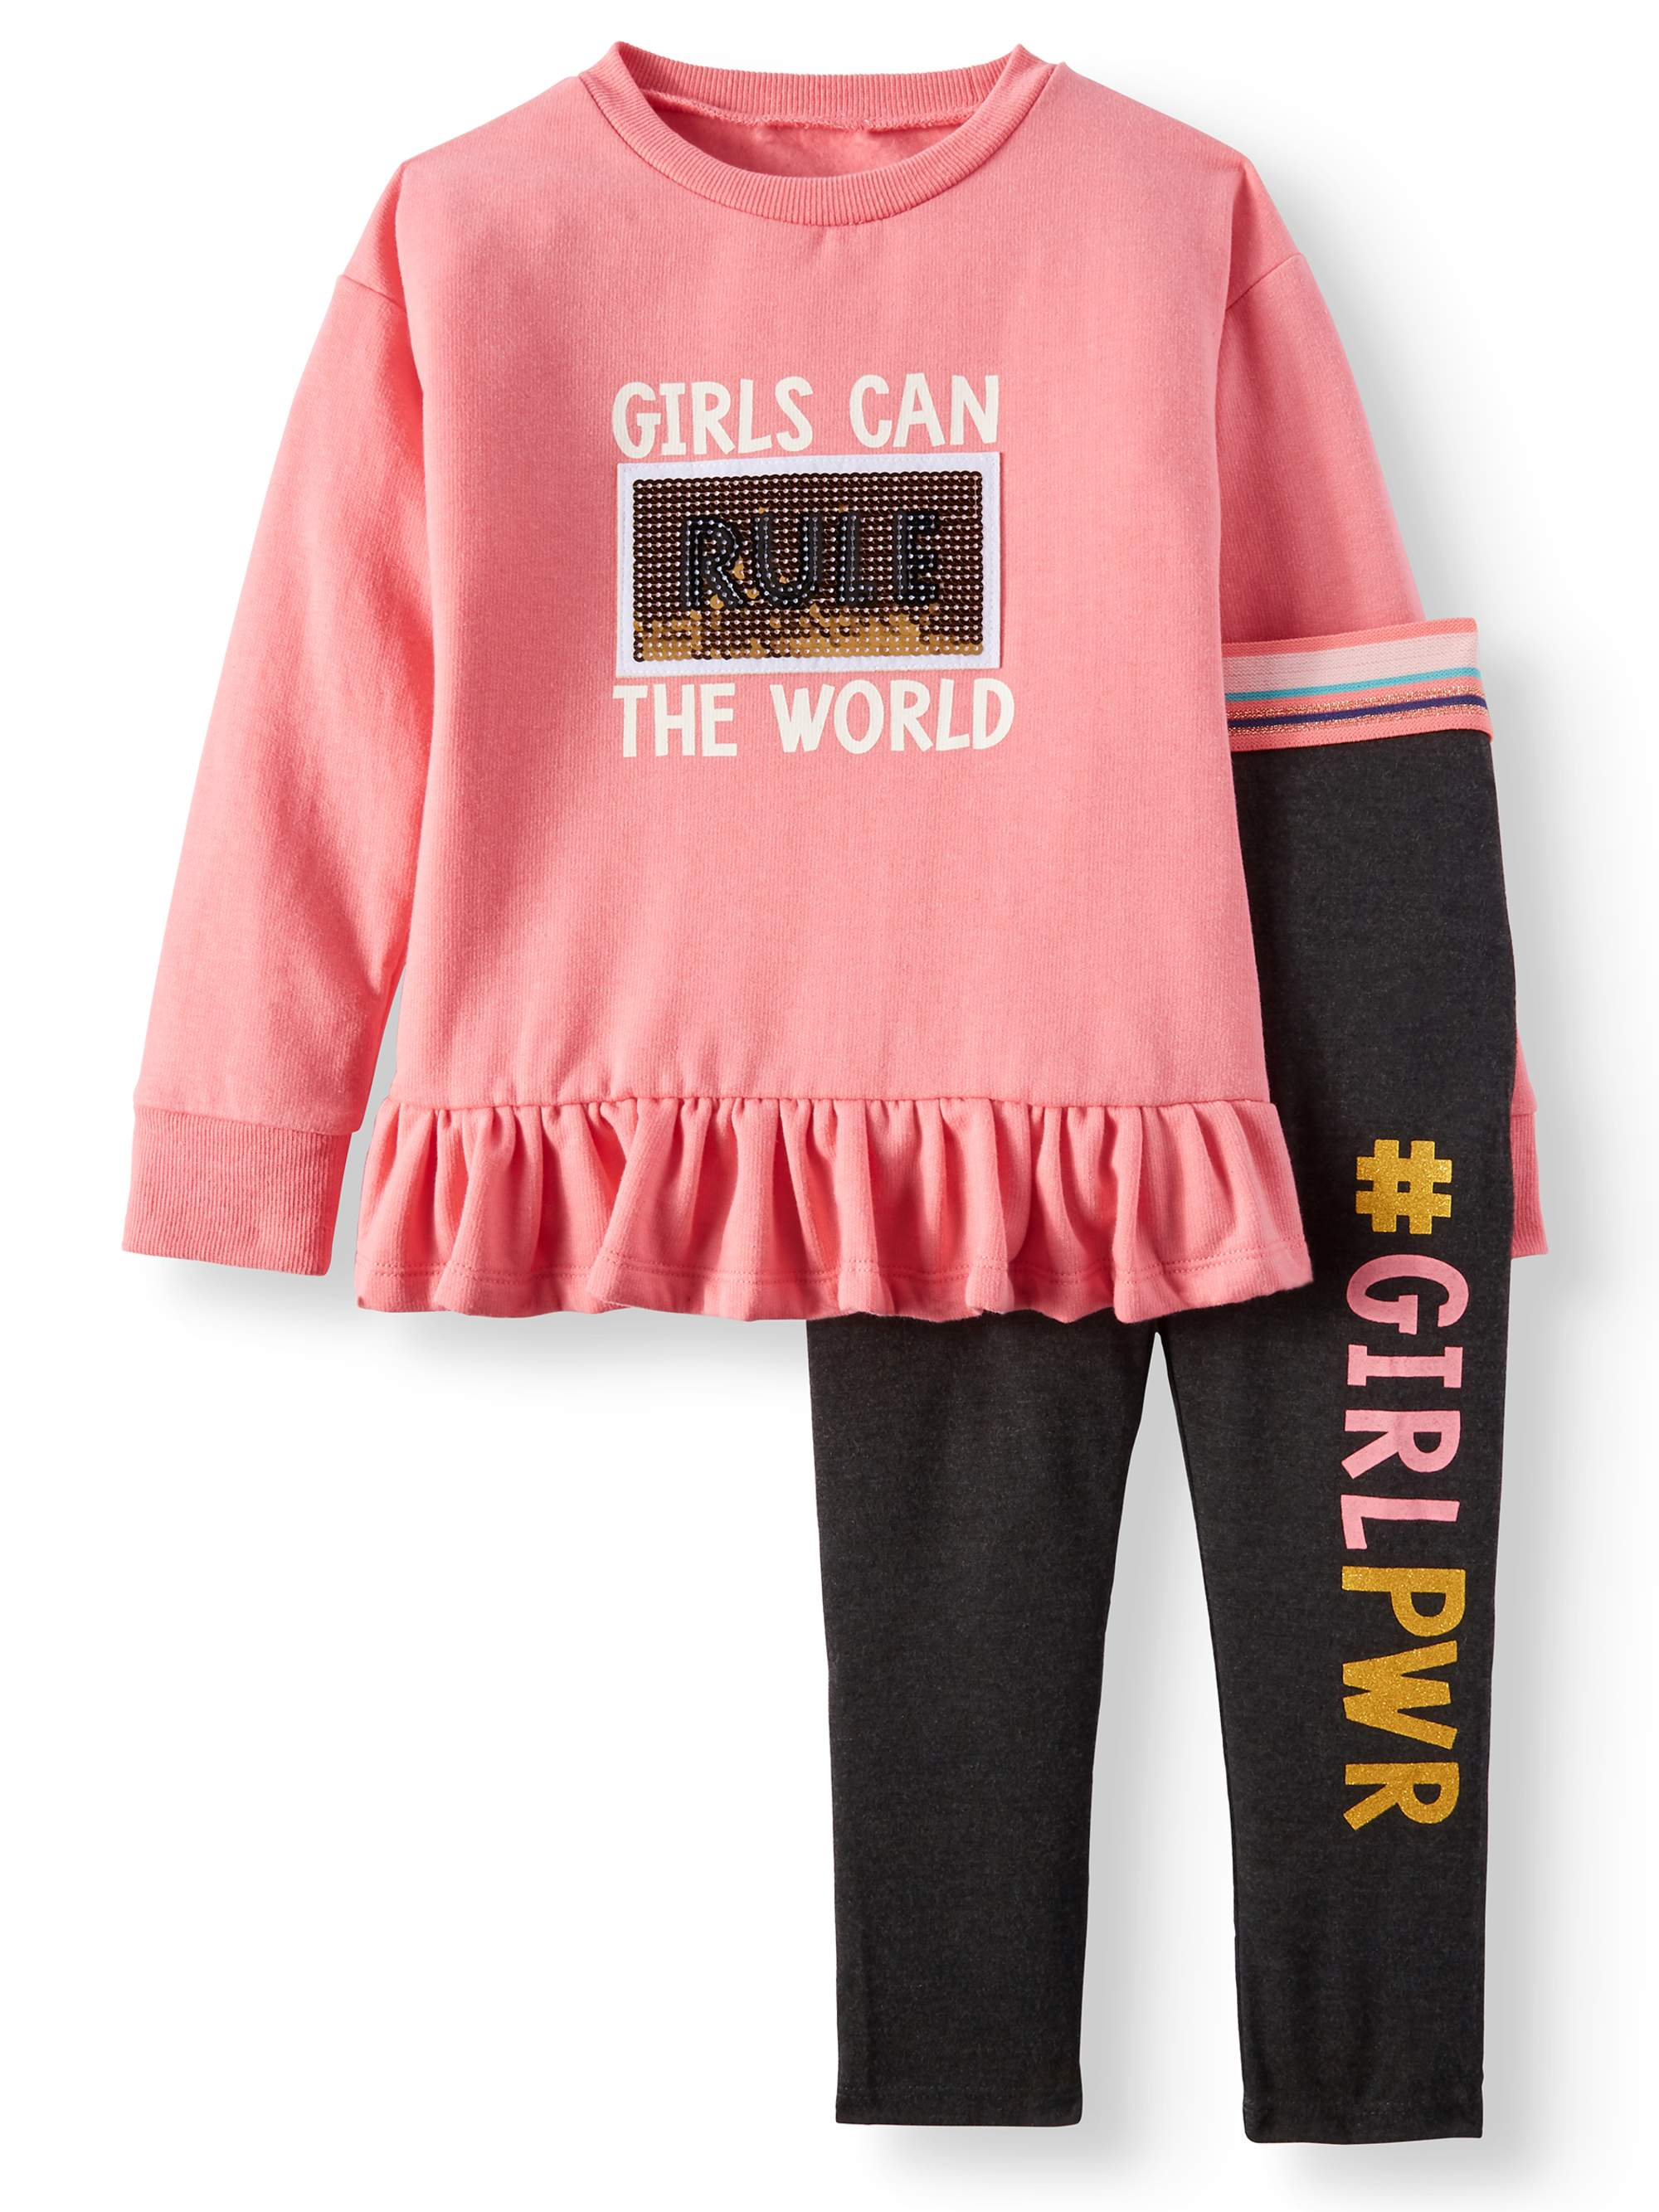 FOREVER ME Little Girls' Girls Rule the World Sequin Tunic and Leggings, 2-Piece Outfit Set